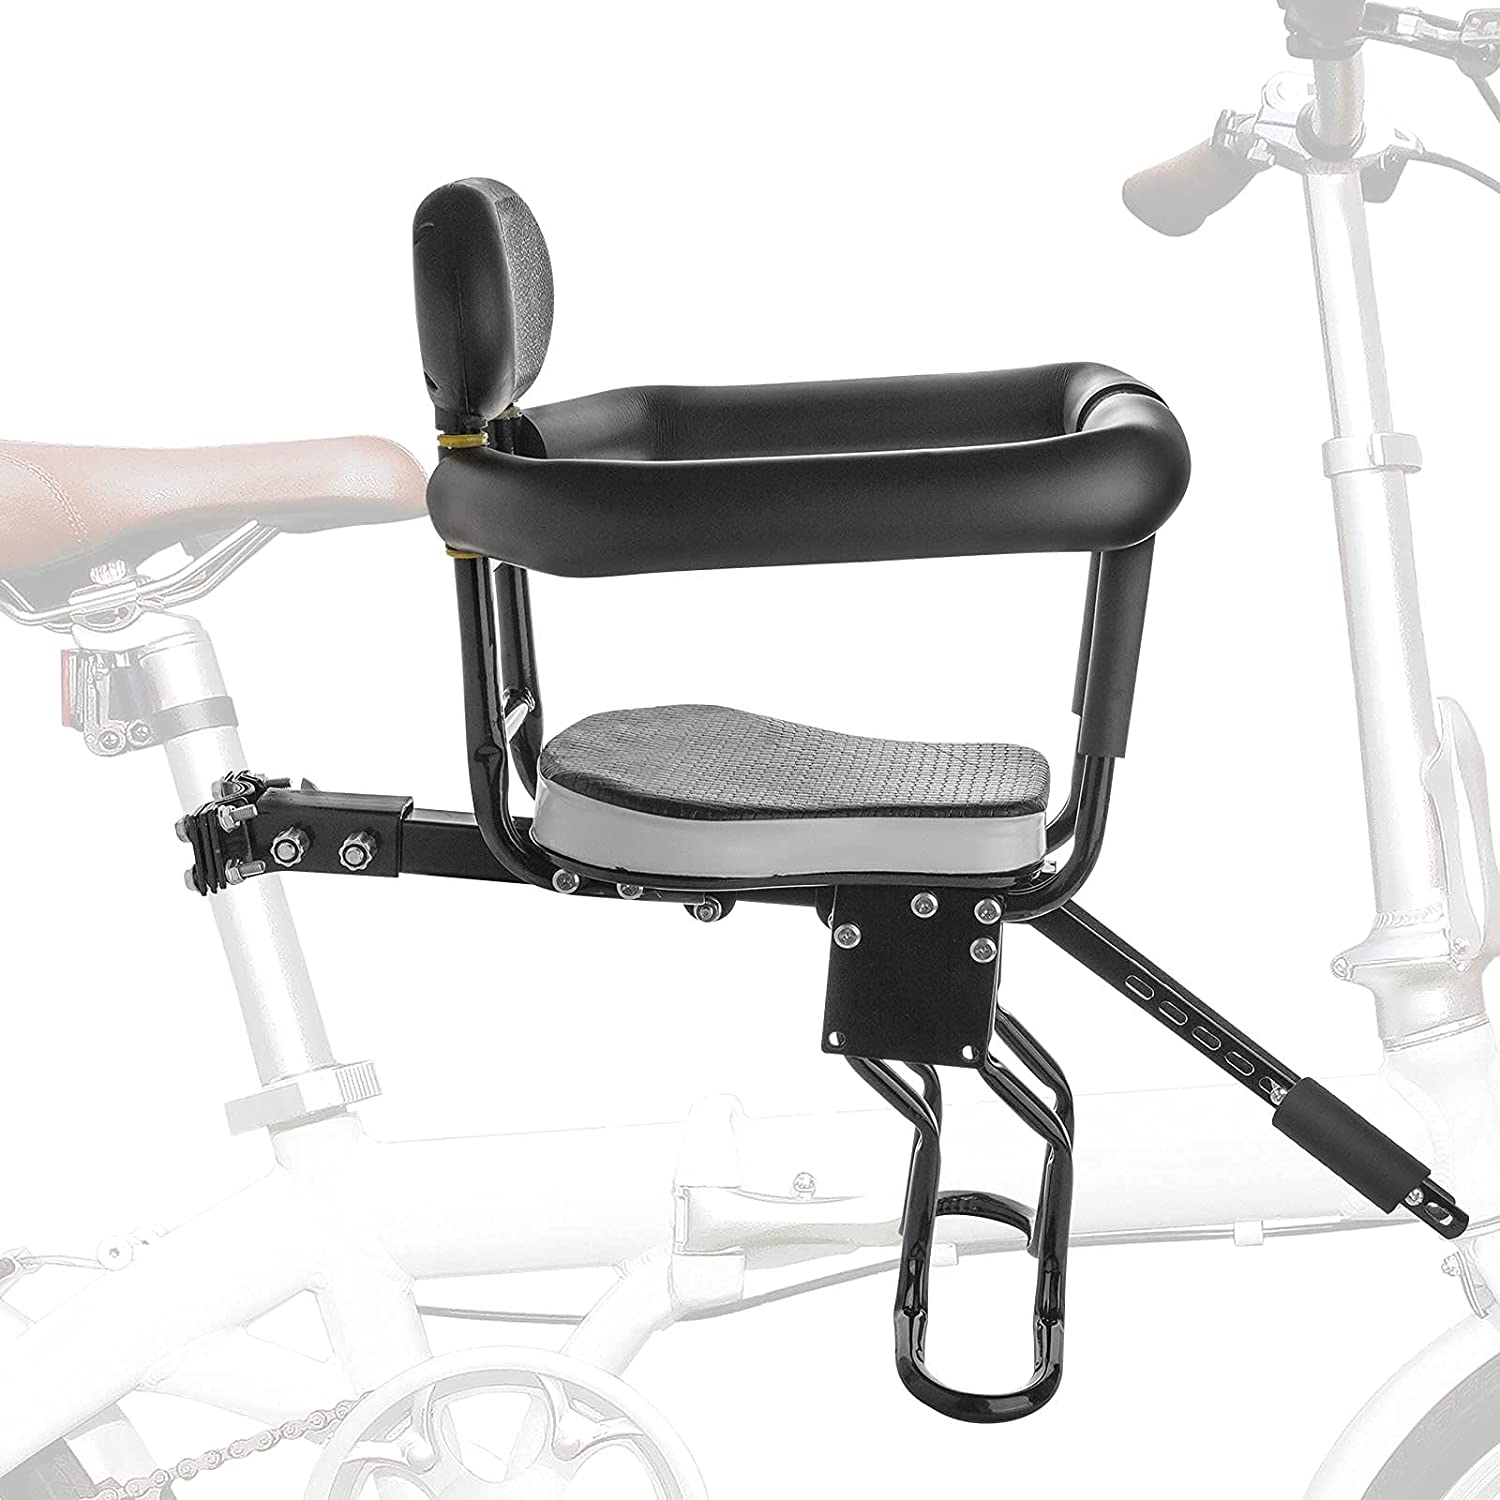 Siiboat Bike Seats Bicycle Carrier Front Mounted